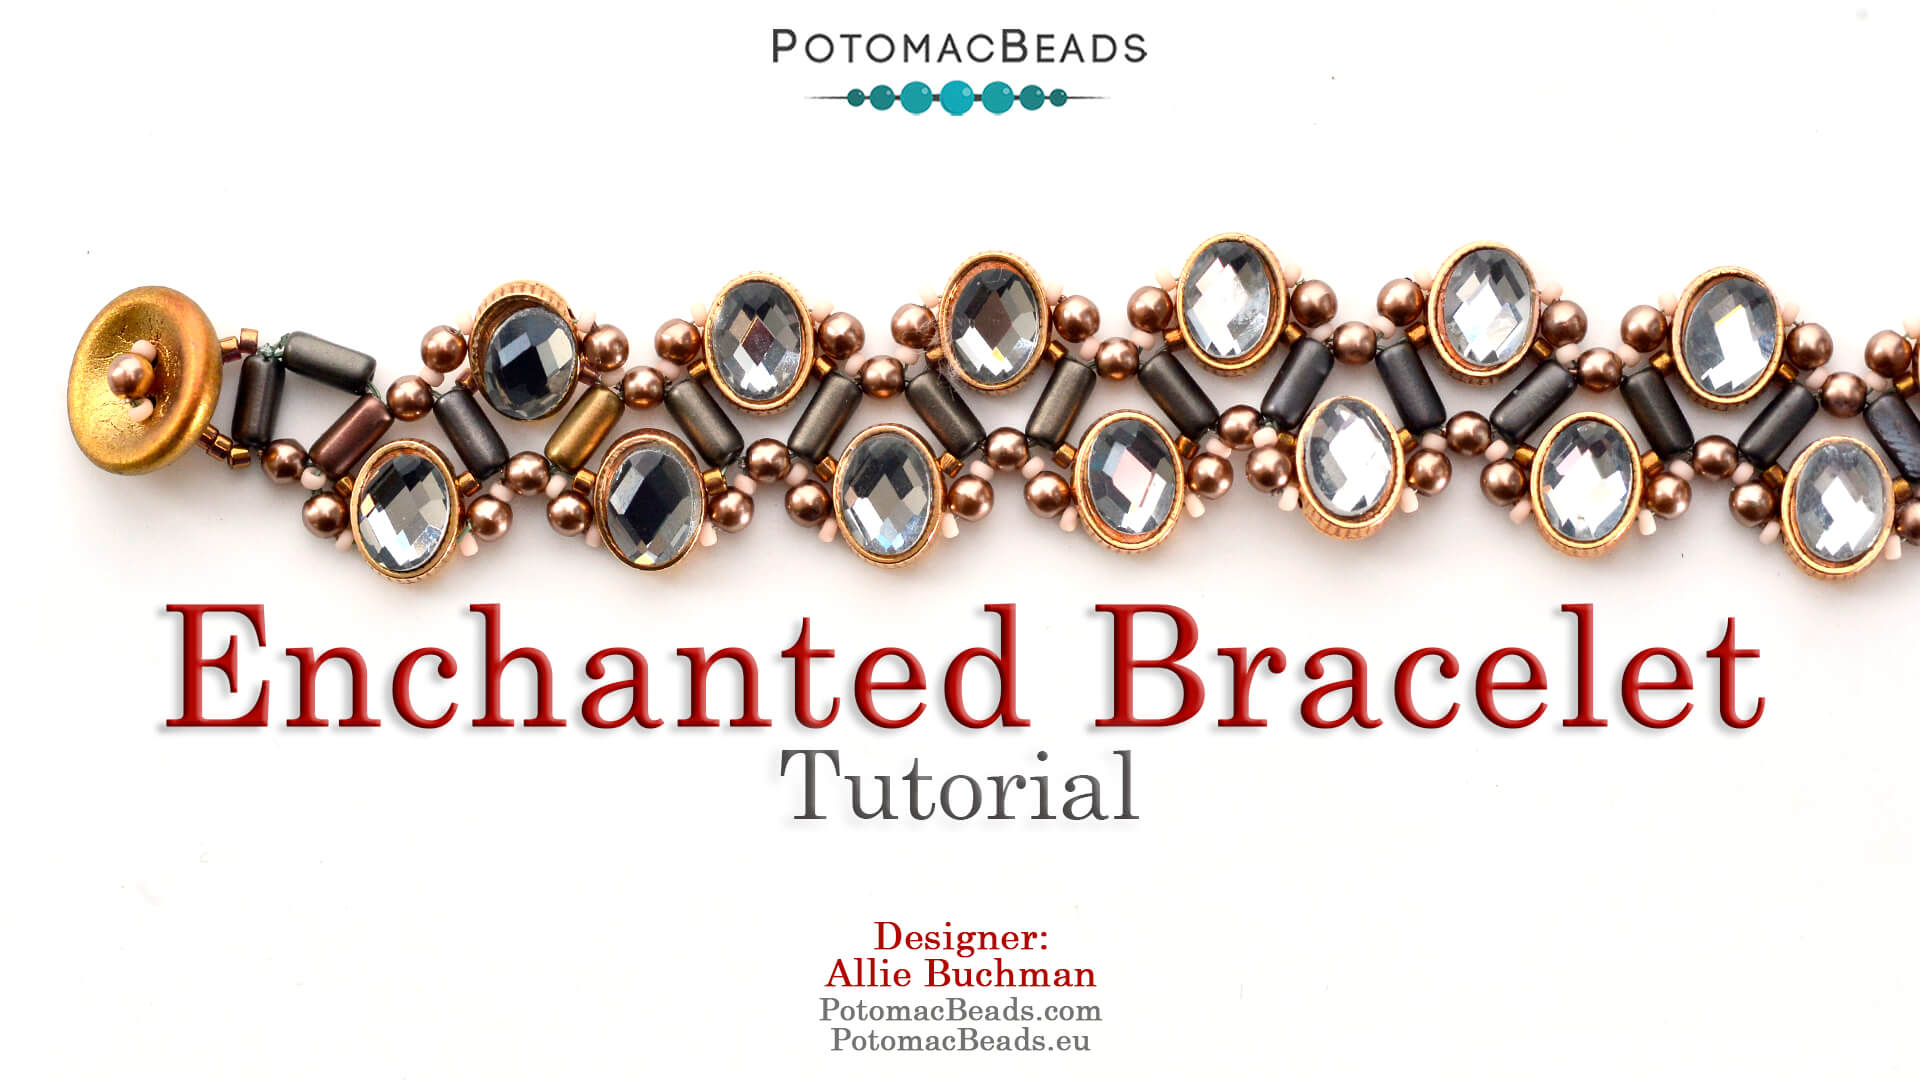 How to Bead Jewelry / Videos Sorted by Beads / Pearl Videos (Czech, Freshwater, Potomac Pearls) / Enchanted Bracelet Tutorial